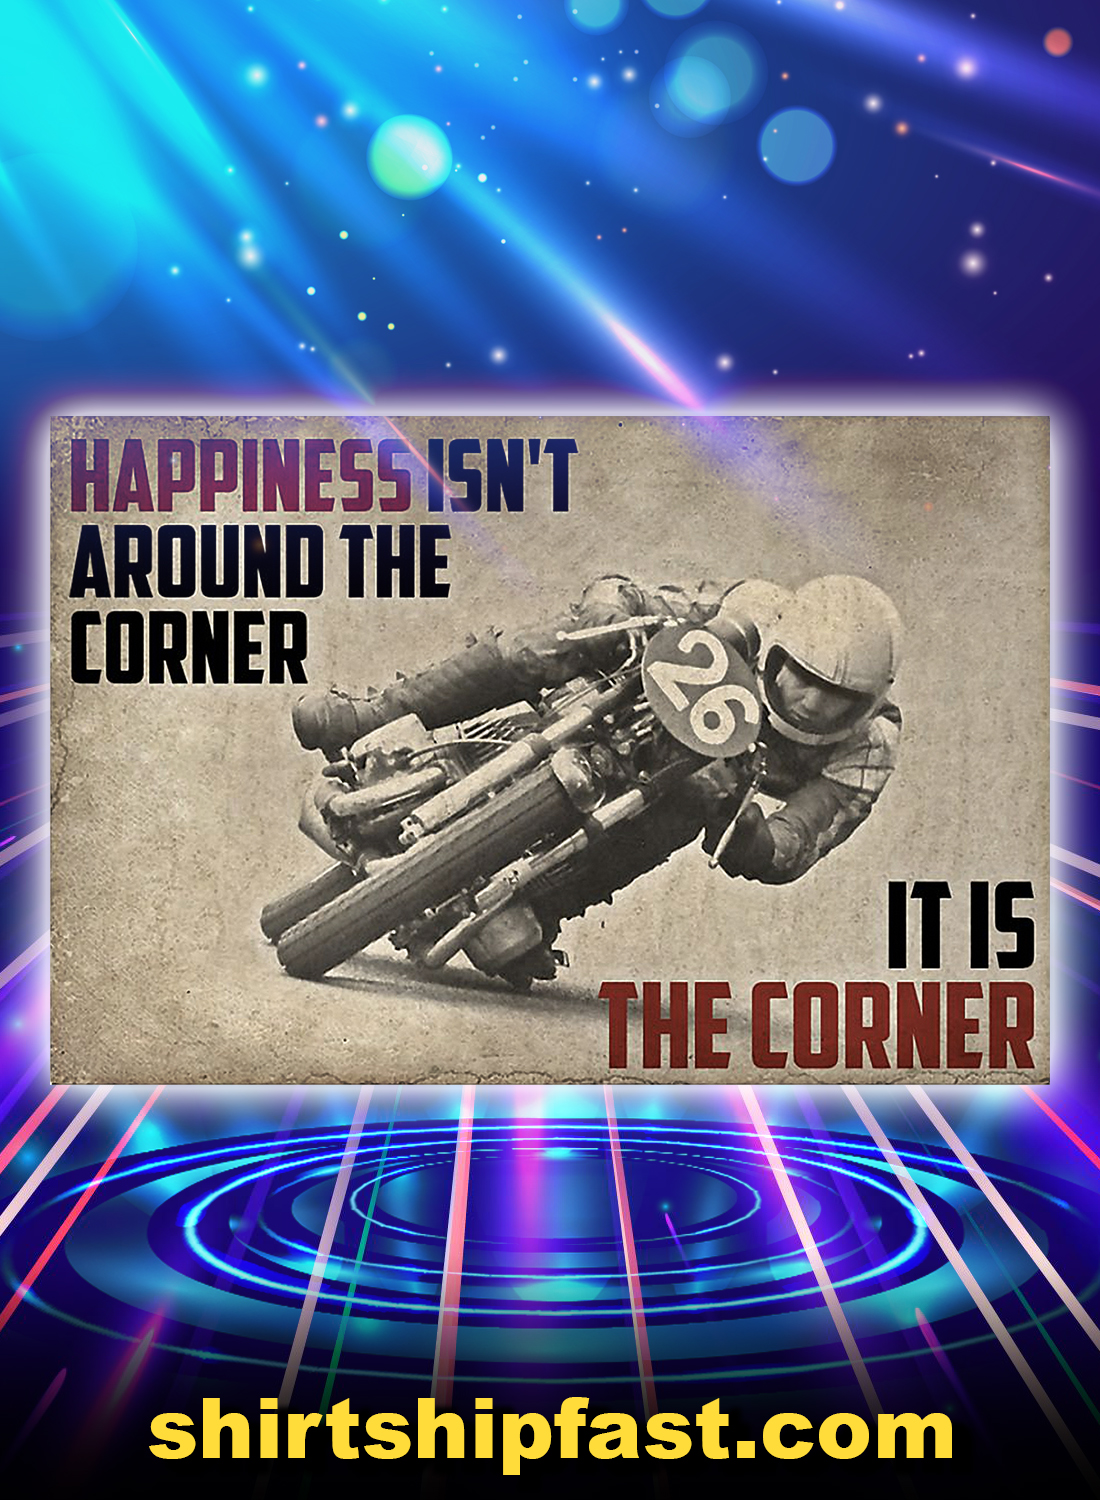 MOTORCYCLE HAPPINESS ISN'T AROUND THE CORNER IT IS THE CORNER POSTER